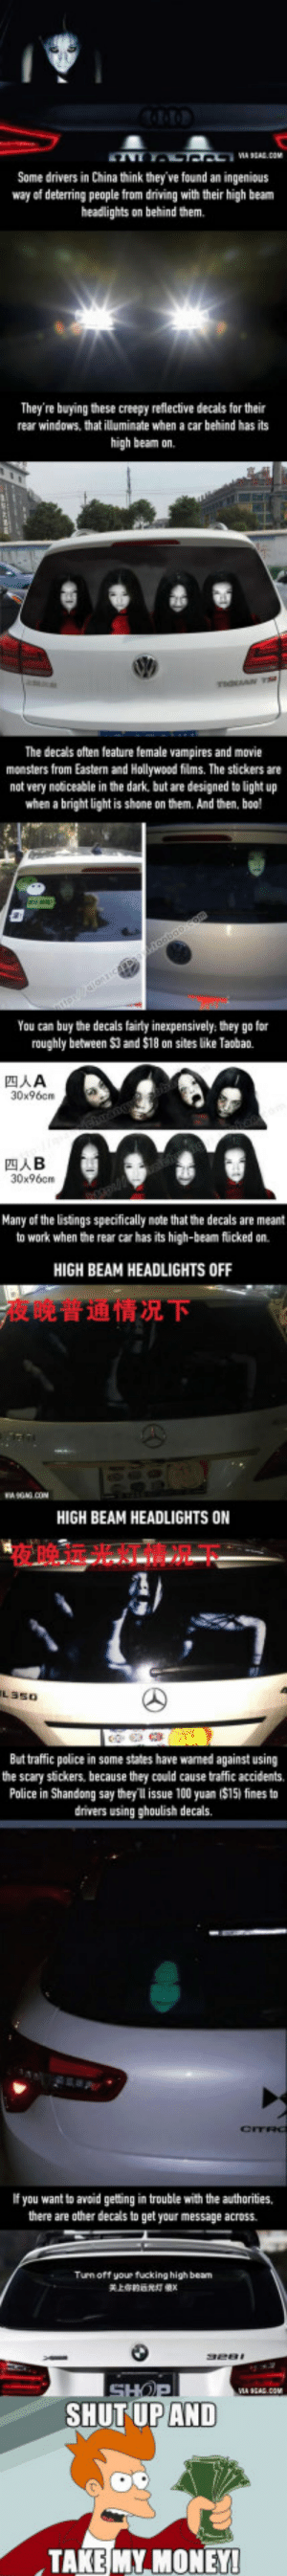 Anaconda, Boo, and Creepy: Some drivers in China think they've found an ingenious  way of deterring people from driving with their high beam  headlights on behind them.  They're buying these creepy reflective decals for their  rear windows, that illuminate when a car behind has its  high beam on.  The decals often feature female vampires and movie  monsters from Eastern and Hollywood films. The stickers are  nat very noticeable in the dark, but are designed to light up  when a bright light is shone on them. And then, boo  You can buy the decals fairty inexpensively they go for  roughly between $3 and $18 on sites like Taobao.  TAA  30x96cn  四人B  30x96cm  Many of the listings specifically note that the decals are meant  to work when the rear car has its high-beam flücked on.  HIGH BEAM HEADLIGHTS OFF  夜晚普通情况下  HIGH BEAM HEADLIGHTS ON  夜晚远光灯㦉况下  L350  But traffic police in some states have wamed against using  the scary stckers, because they could cause traffic accidents.  Police in Shandong say they l issue 100 yuan ($15) fines to  drivers using ghoulish decals.  If you want to avoid getting in trouble with the authorities.  there are other decals to get your message across.  Tun off your fucking high beam  关上你的远光灯  SHUT UP AND  TAKE MY MONEY Chinese drivers try to deter high-beamers with scary reflective decals